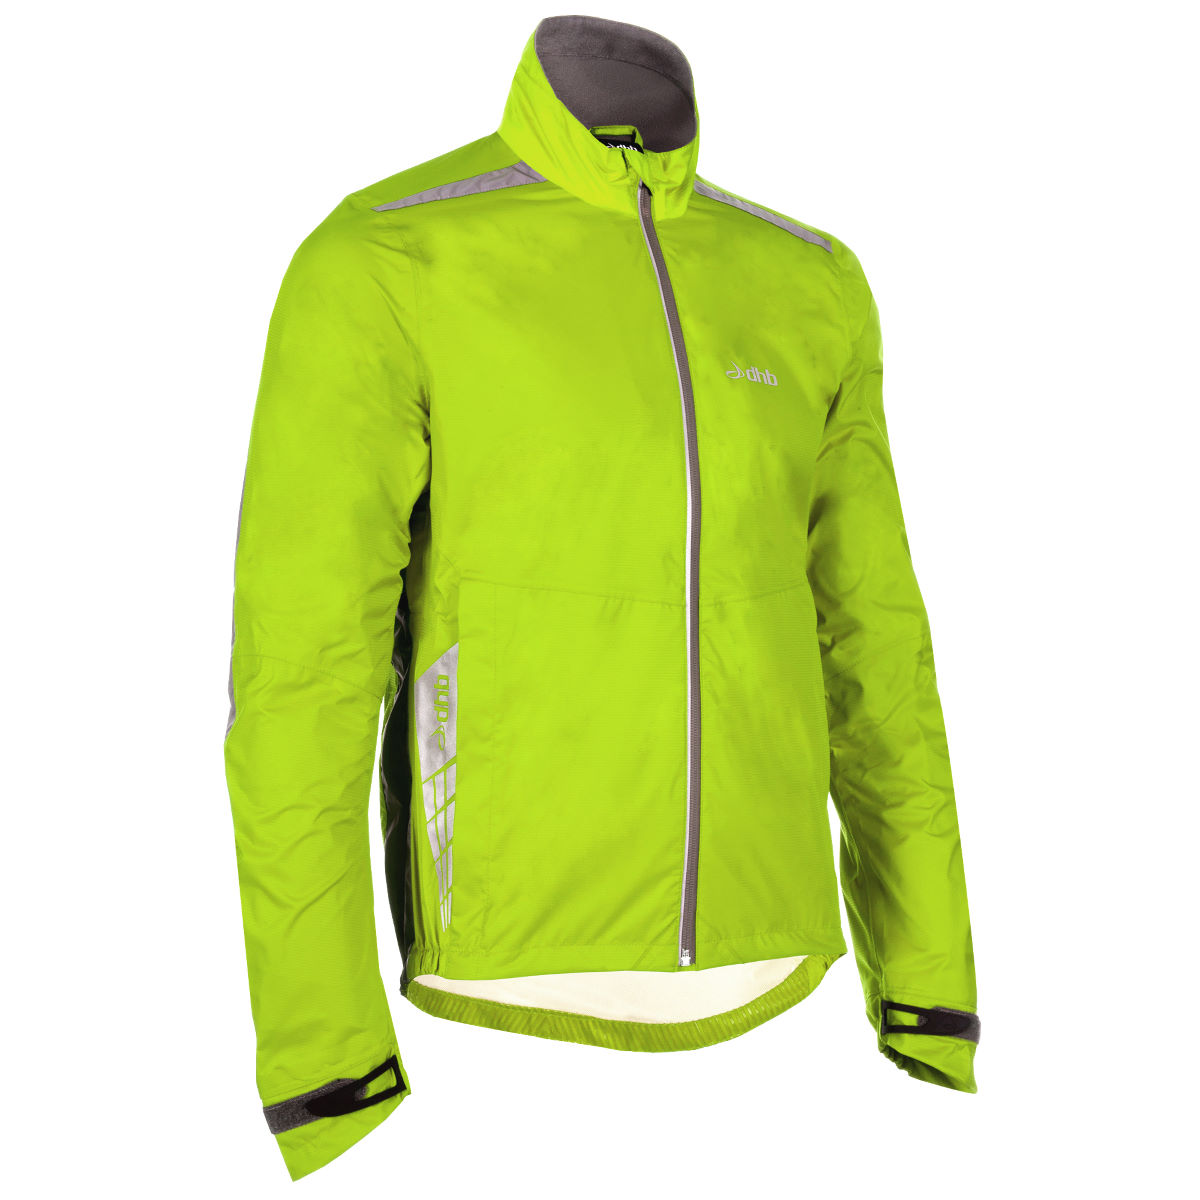 dhb Commuter Waterproof Cycle Jacket